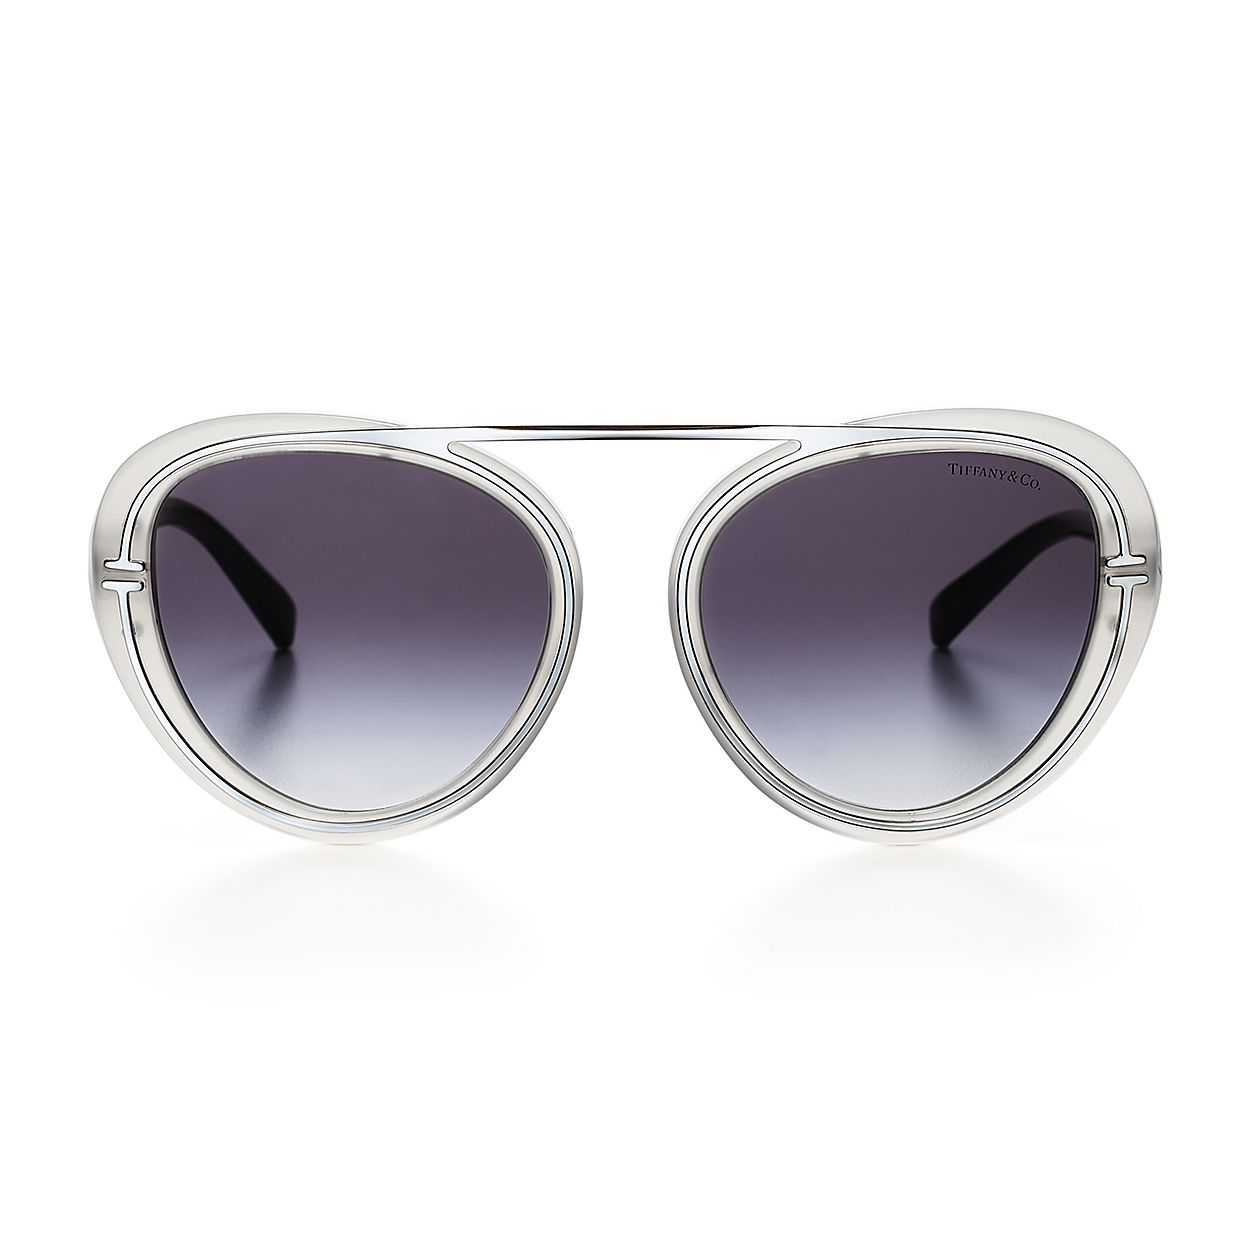 7e93bb66e637 Tiffany T round sunglasses in silver-colored metal.